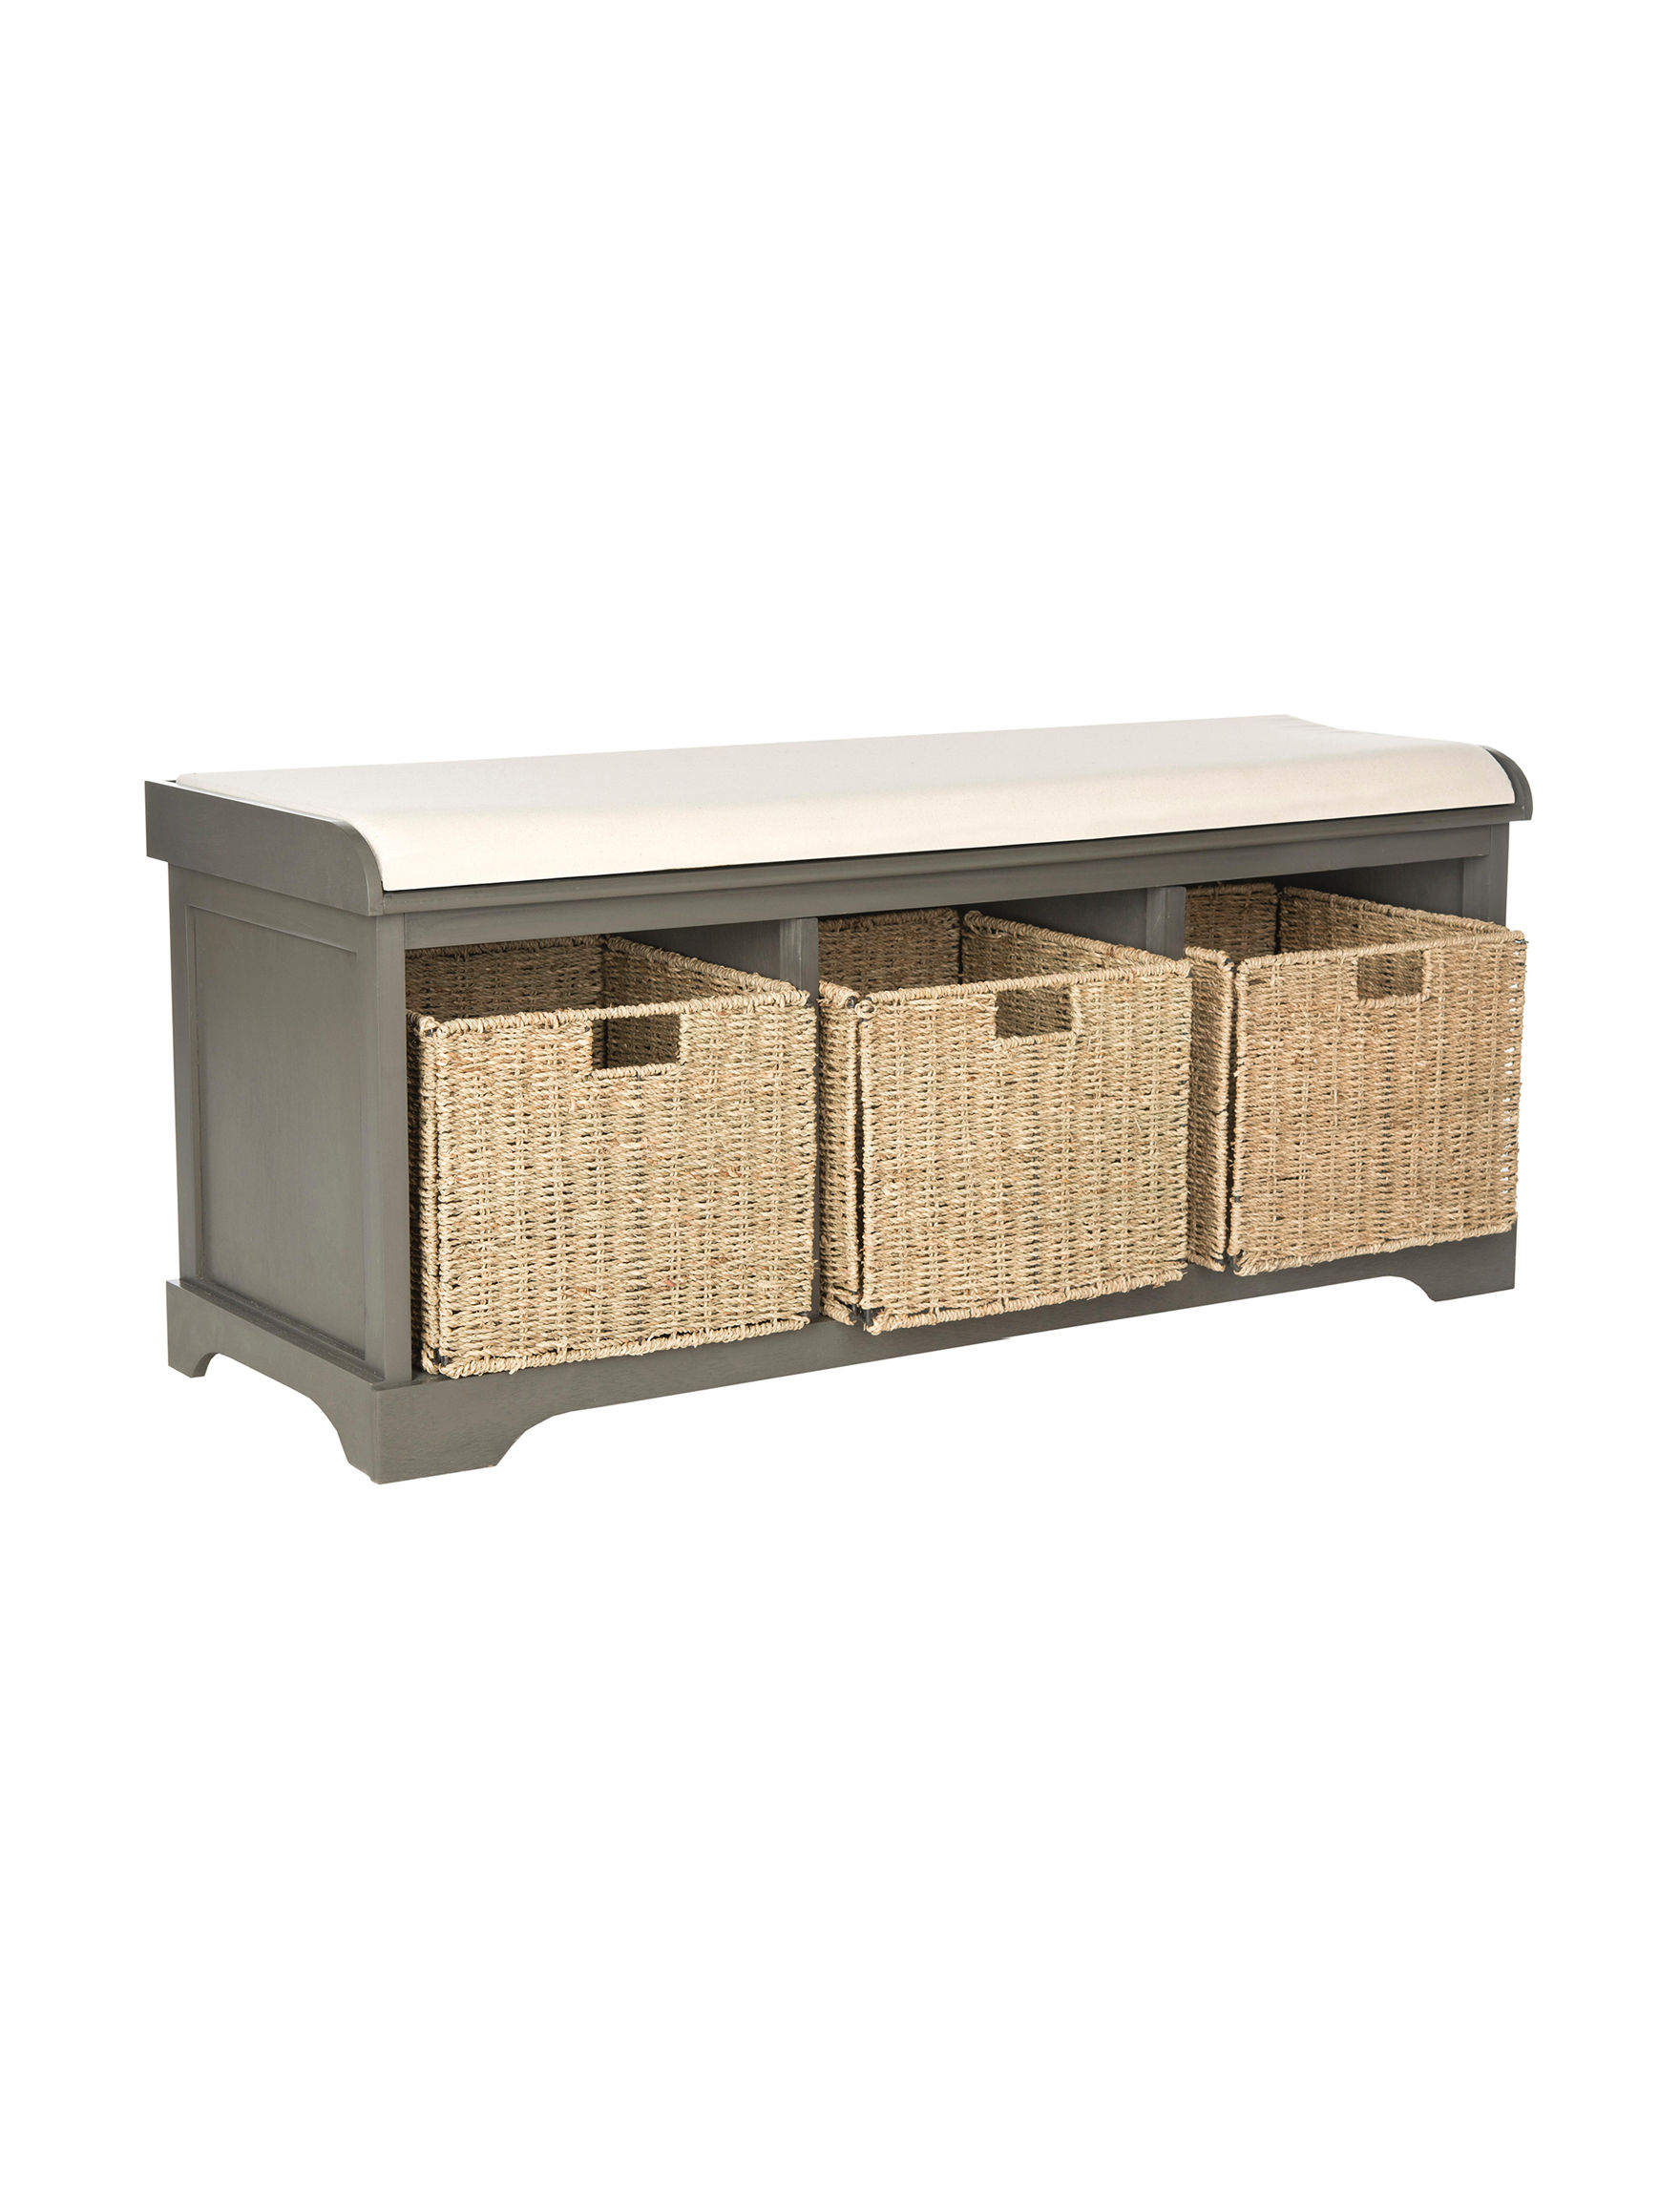 Safavieh Lonan Wicker Storage Bench Stage Stores